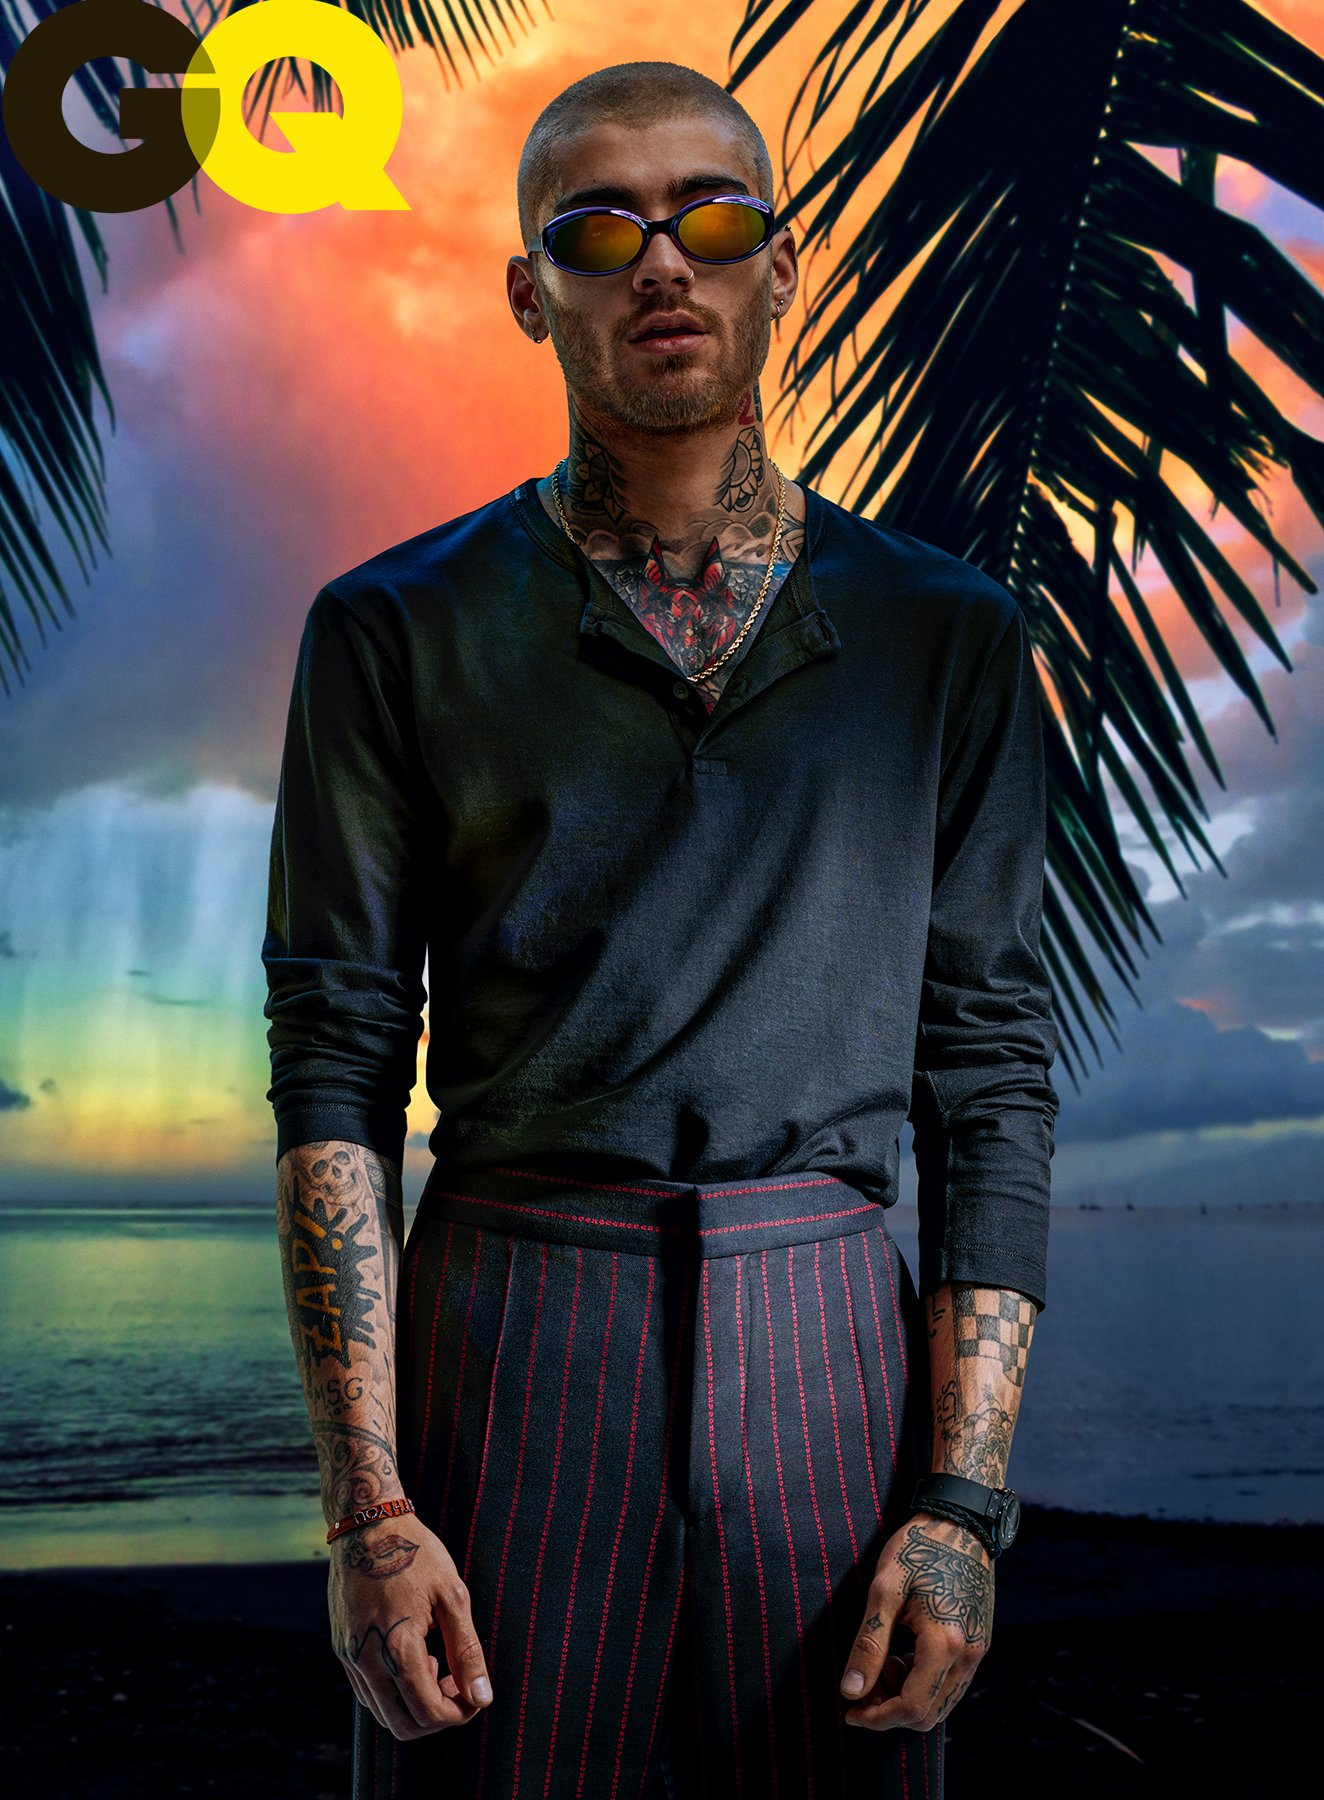 See all the photos from @ZaynMalik's first GQ cover shoot https://t.co/5CACmAXmJy https://t.co/ZpRsoDP9M9